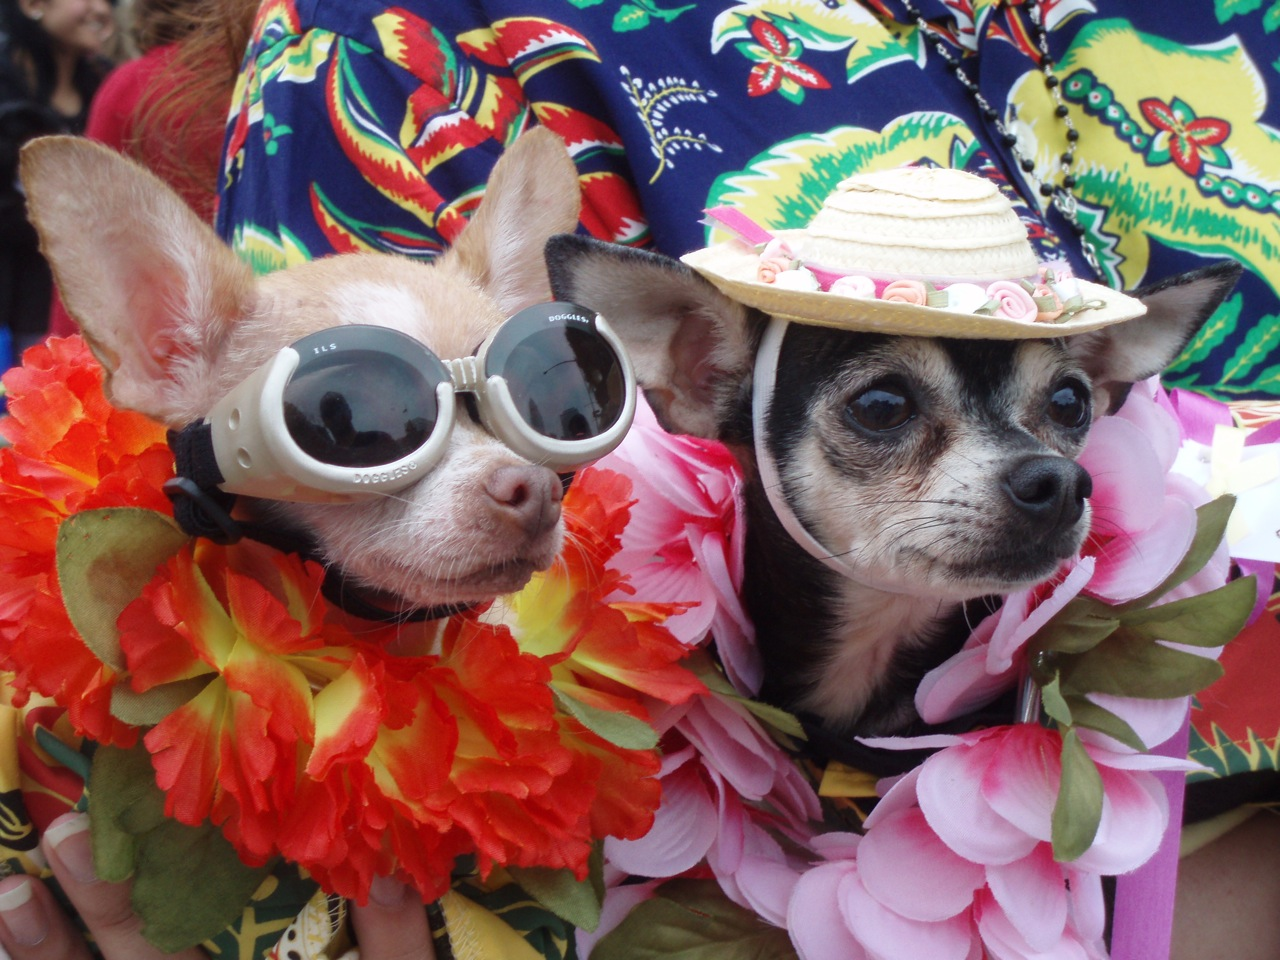 DTLA: 83rd Annual Blessing of the Animals